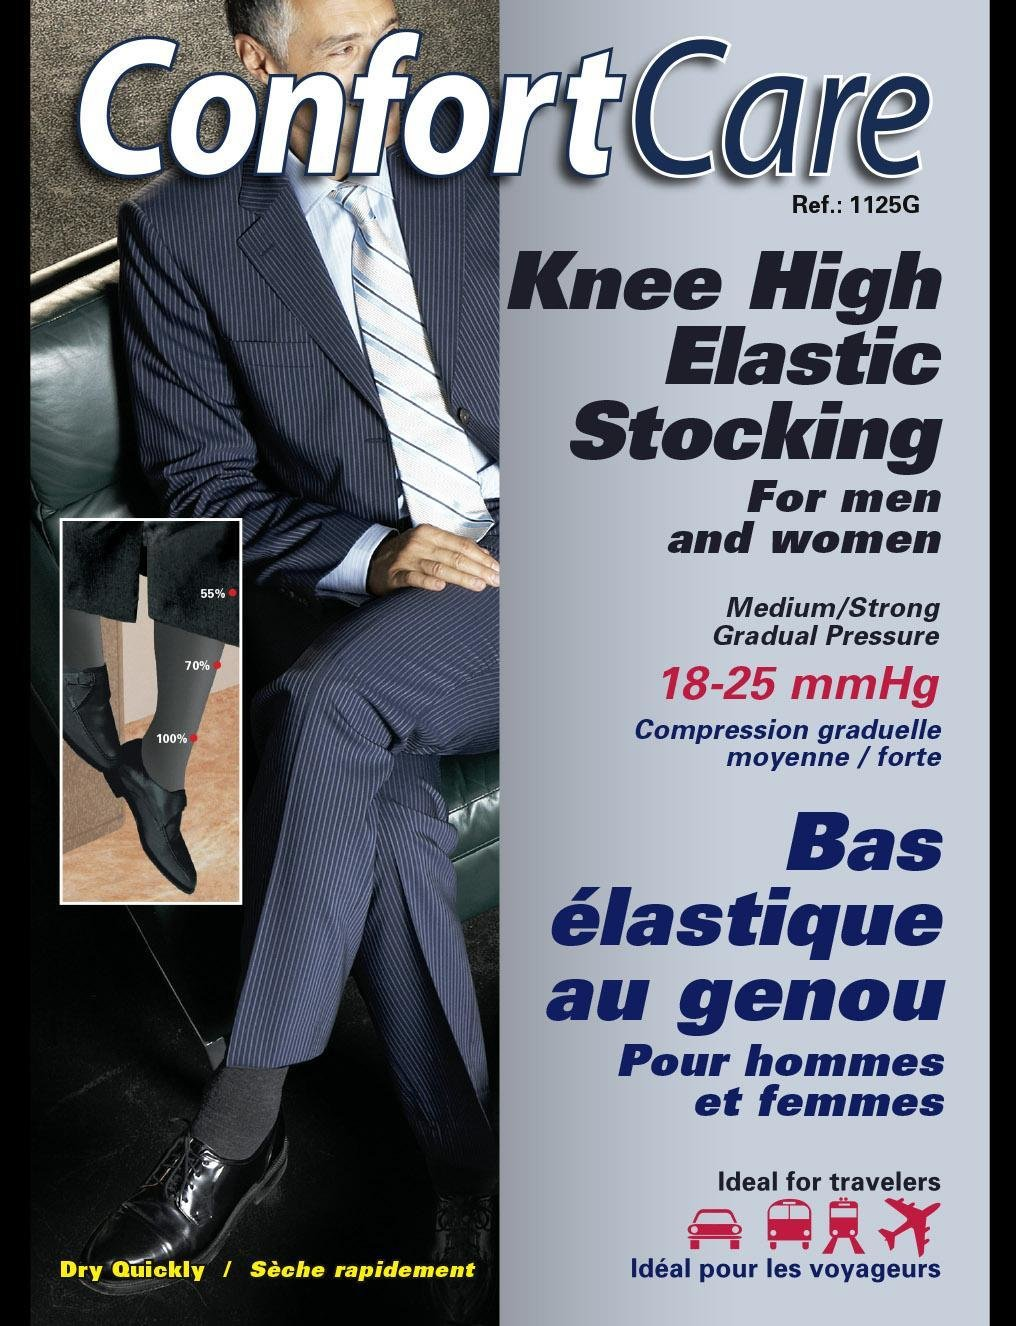 Spécial #1125g 3PRS. X $50.00 Bas Élastique au Genoux Support moyen pour Homme ou femme ( 18-25mmHg) Knee high medium support Elastic  Stockings for men & women.